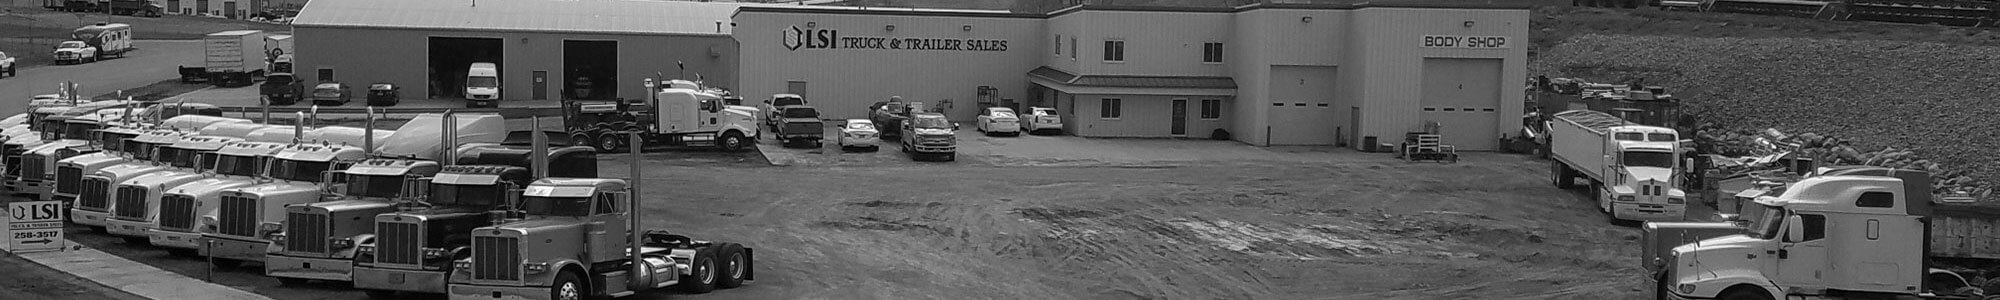 lsi truck sales building